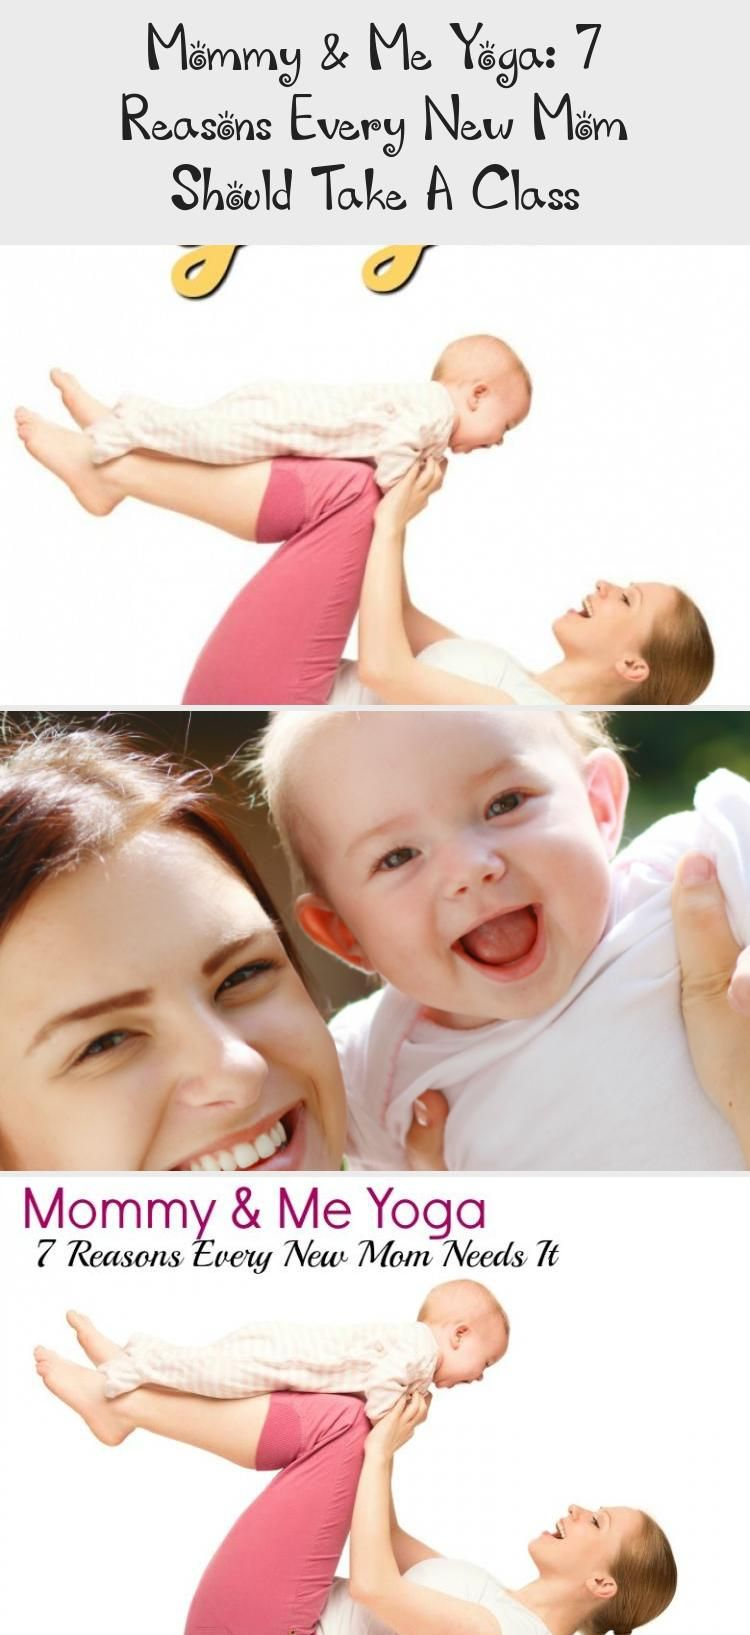 Mommy & Me Yoga: 7 Reasons Every New Mom Should Take A ...